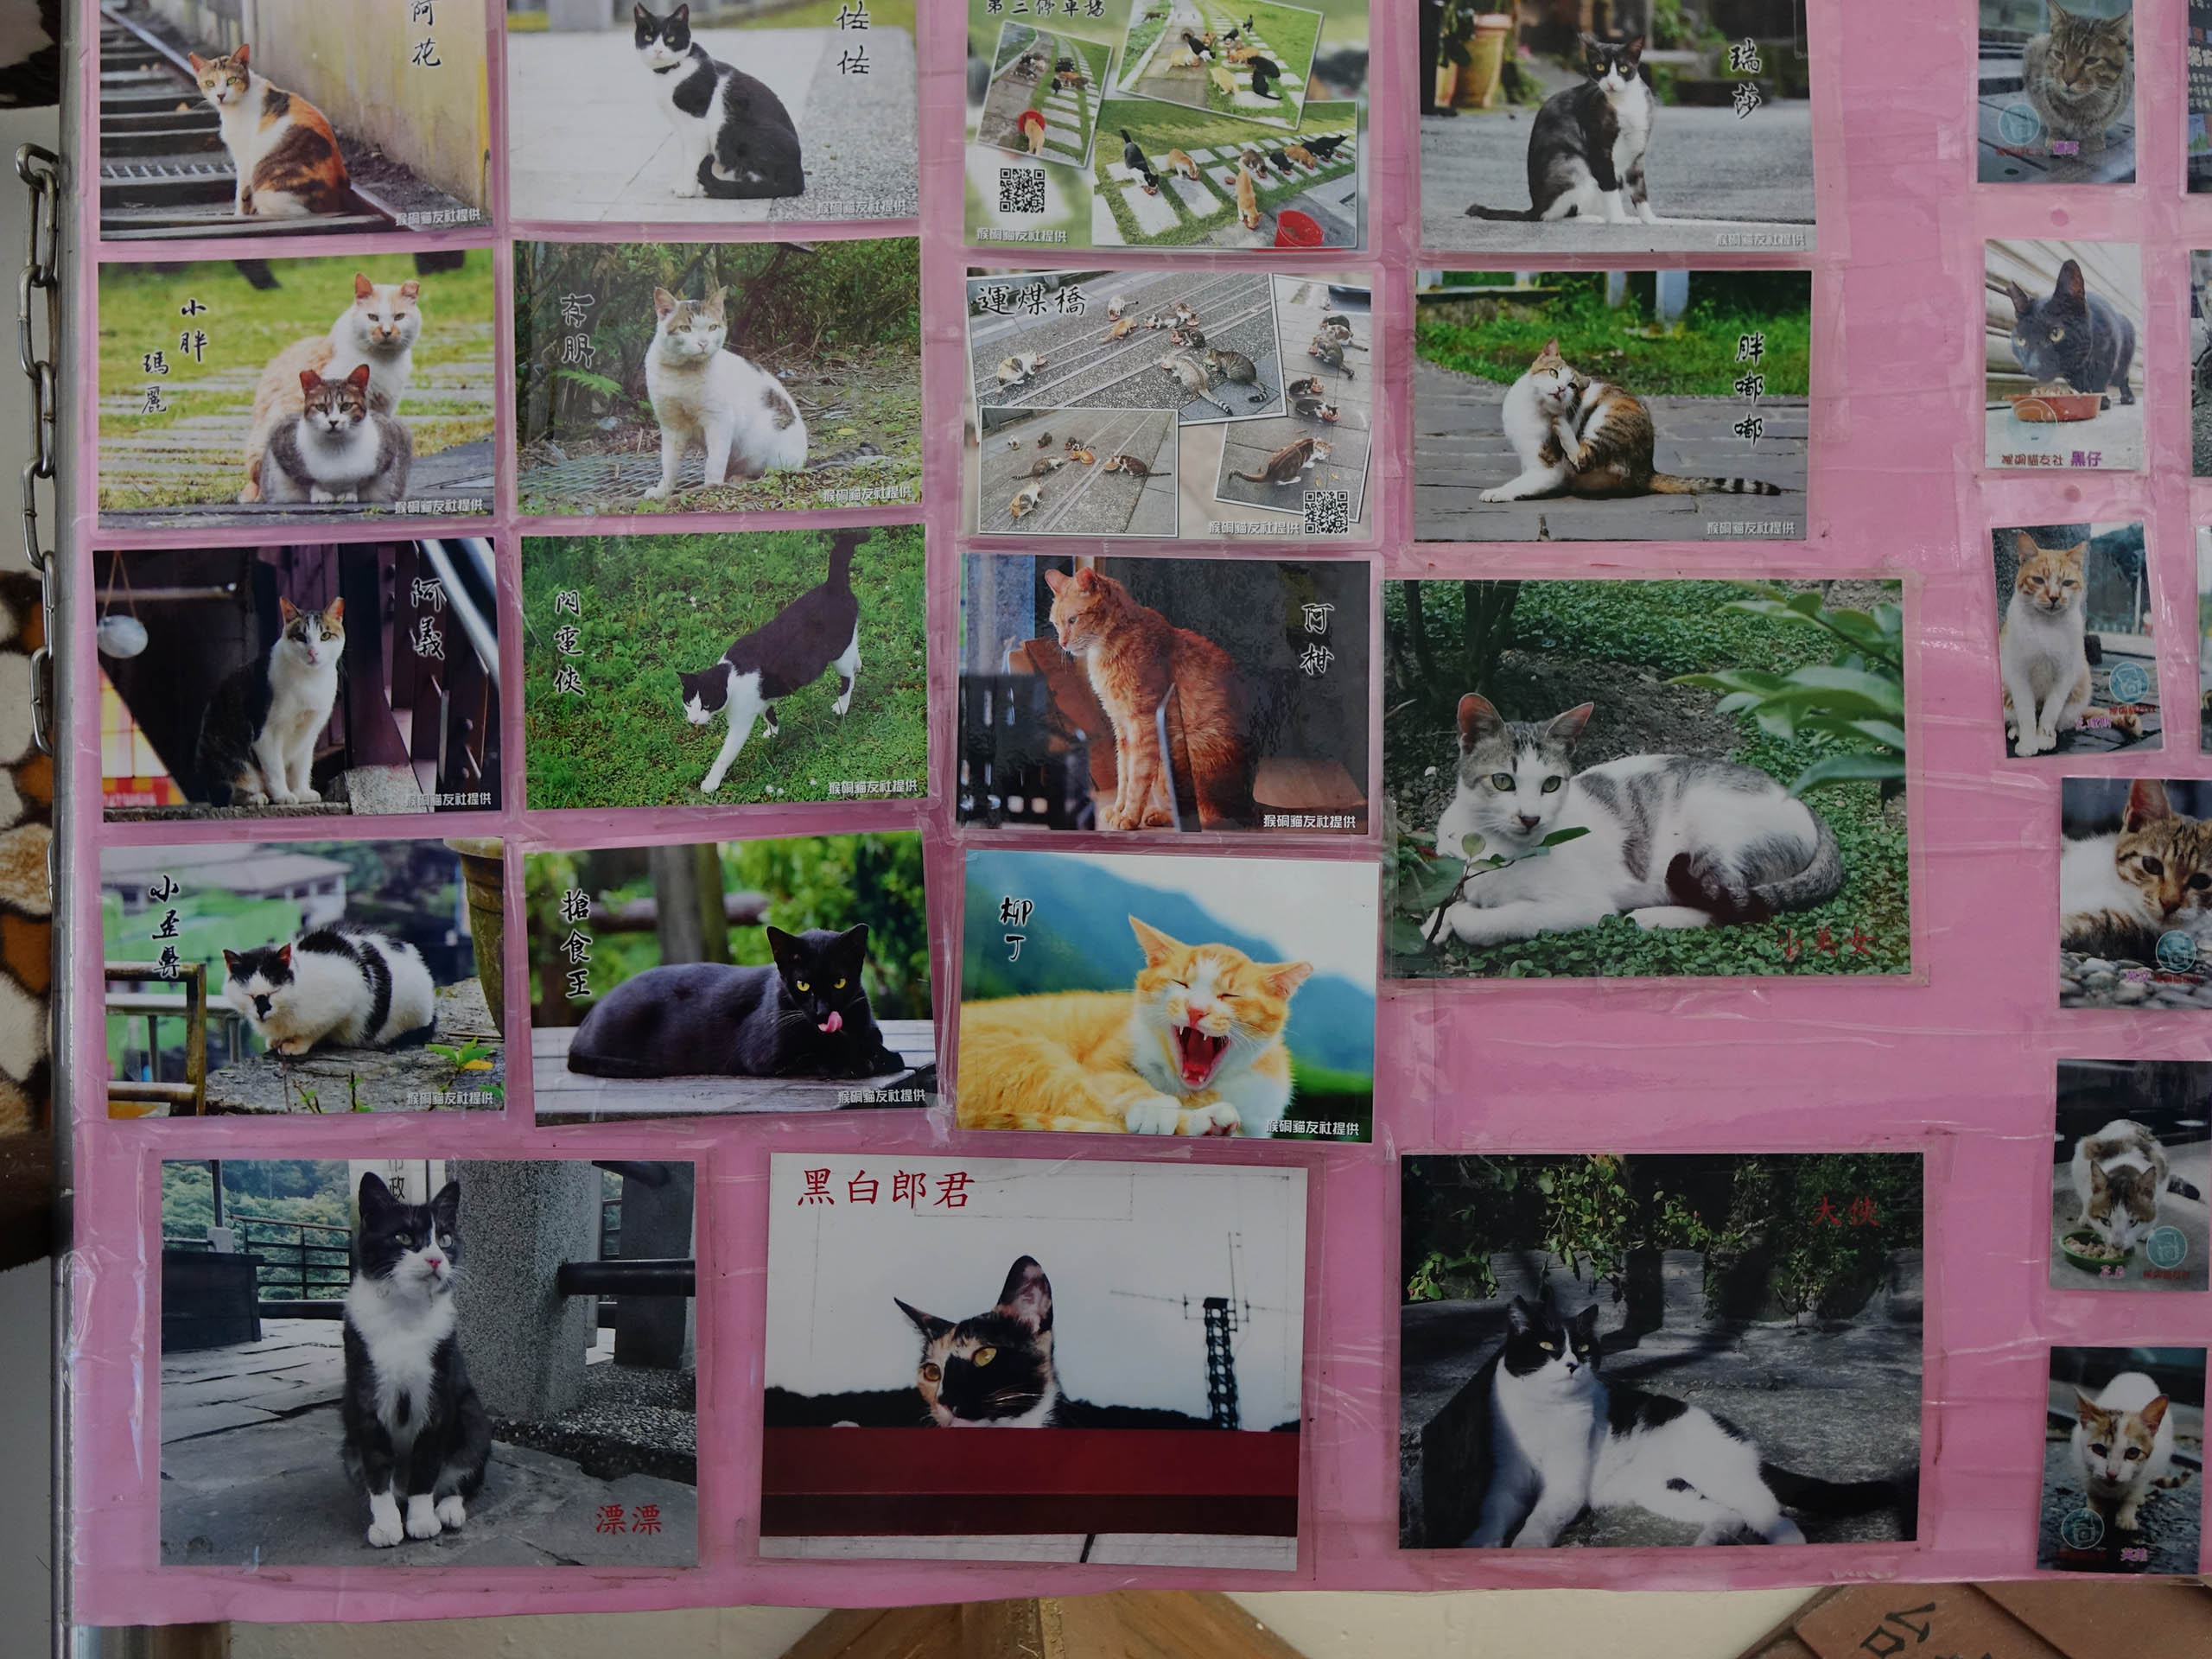 Cats of Houtong, #8204